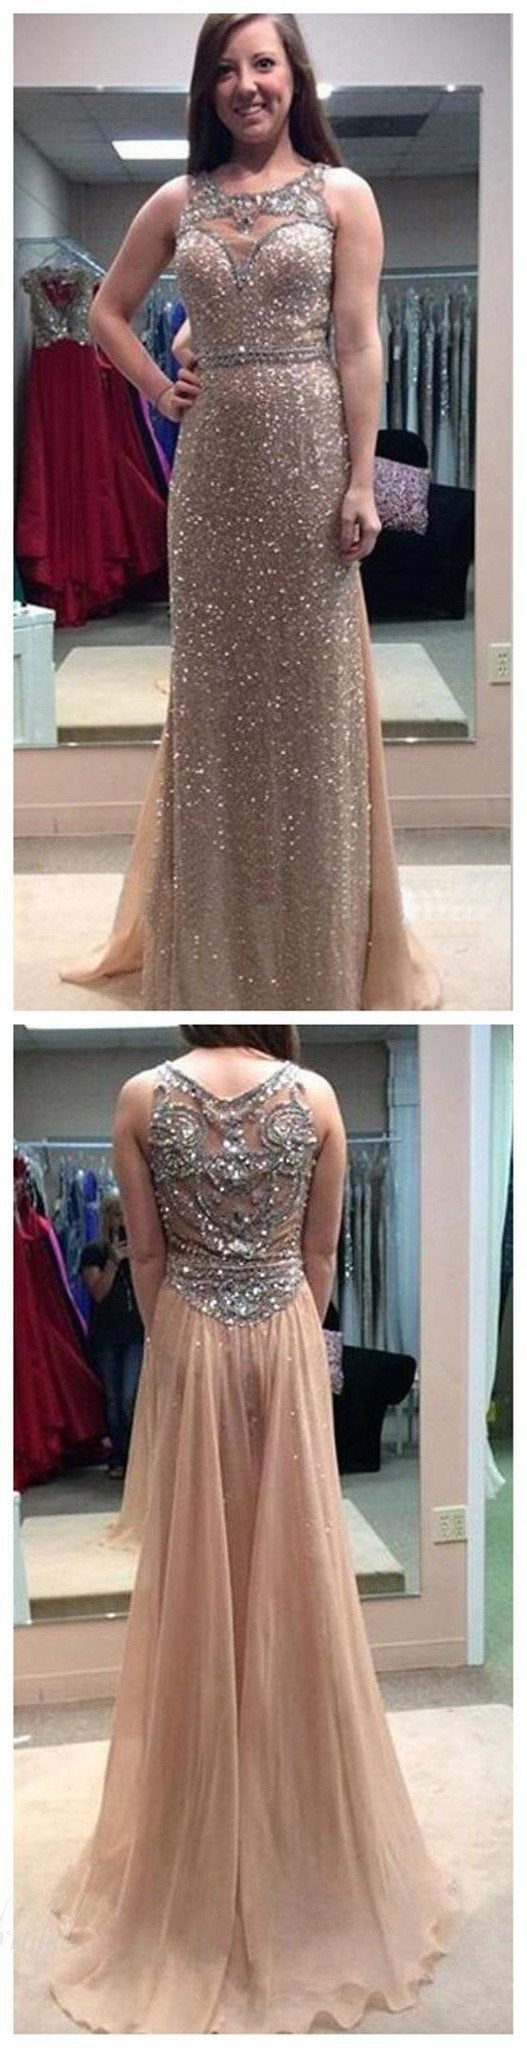 Scoop Neckline Rhinestone Beaded Long Sheath Chiffon Prom Dresses ,BG0016